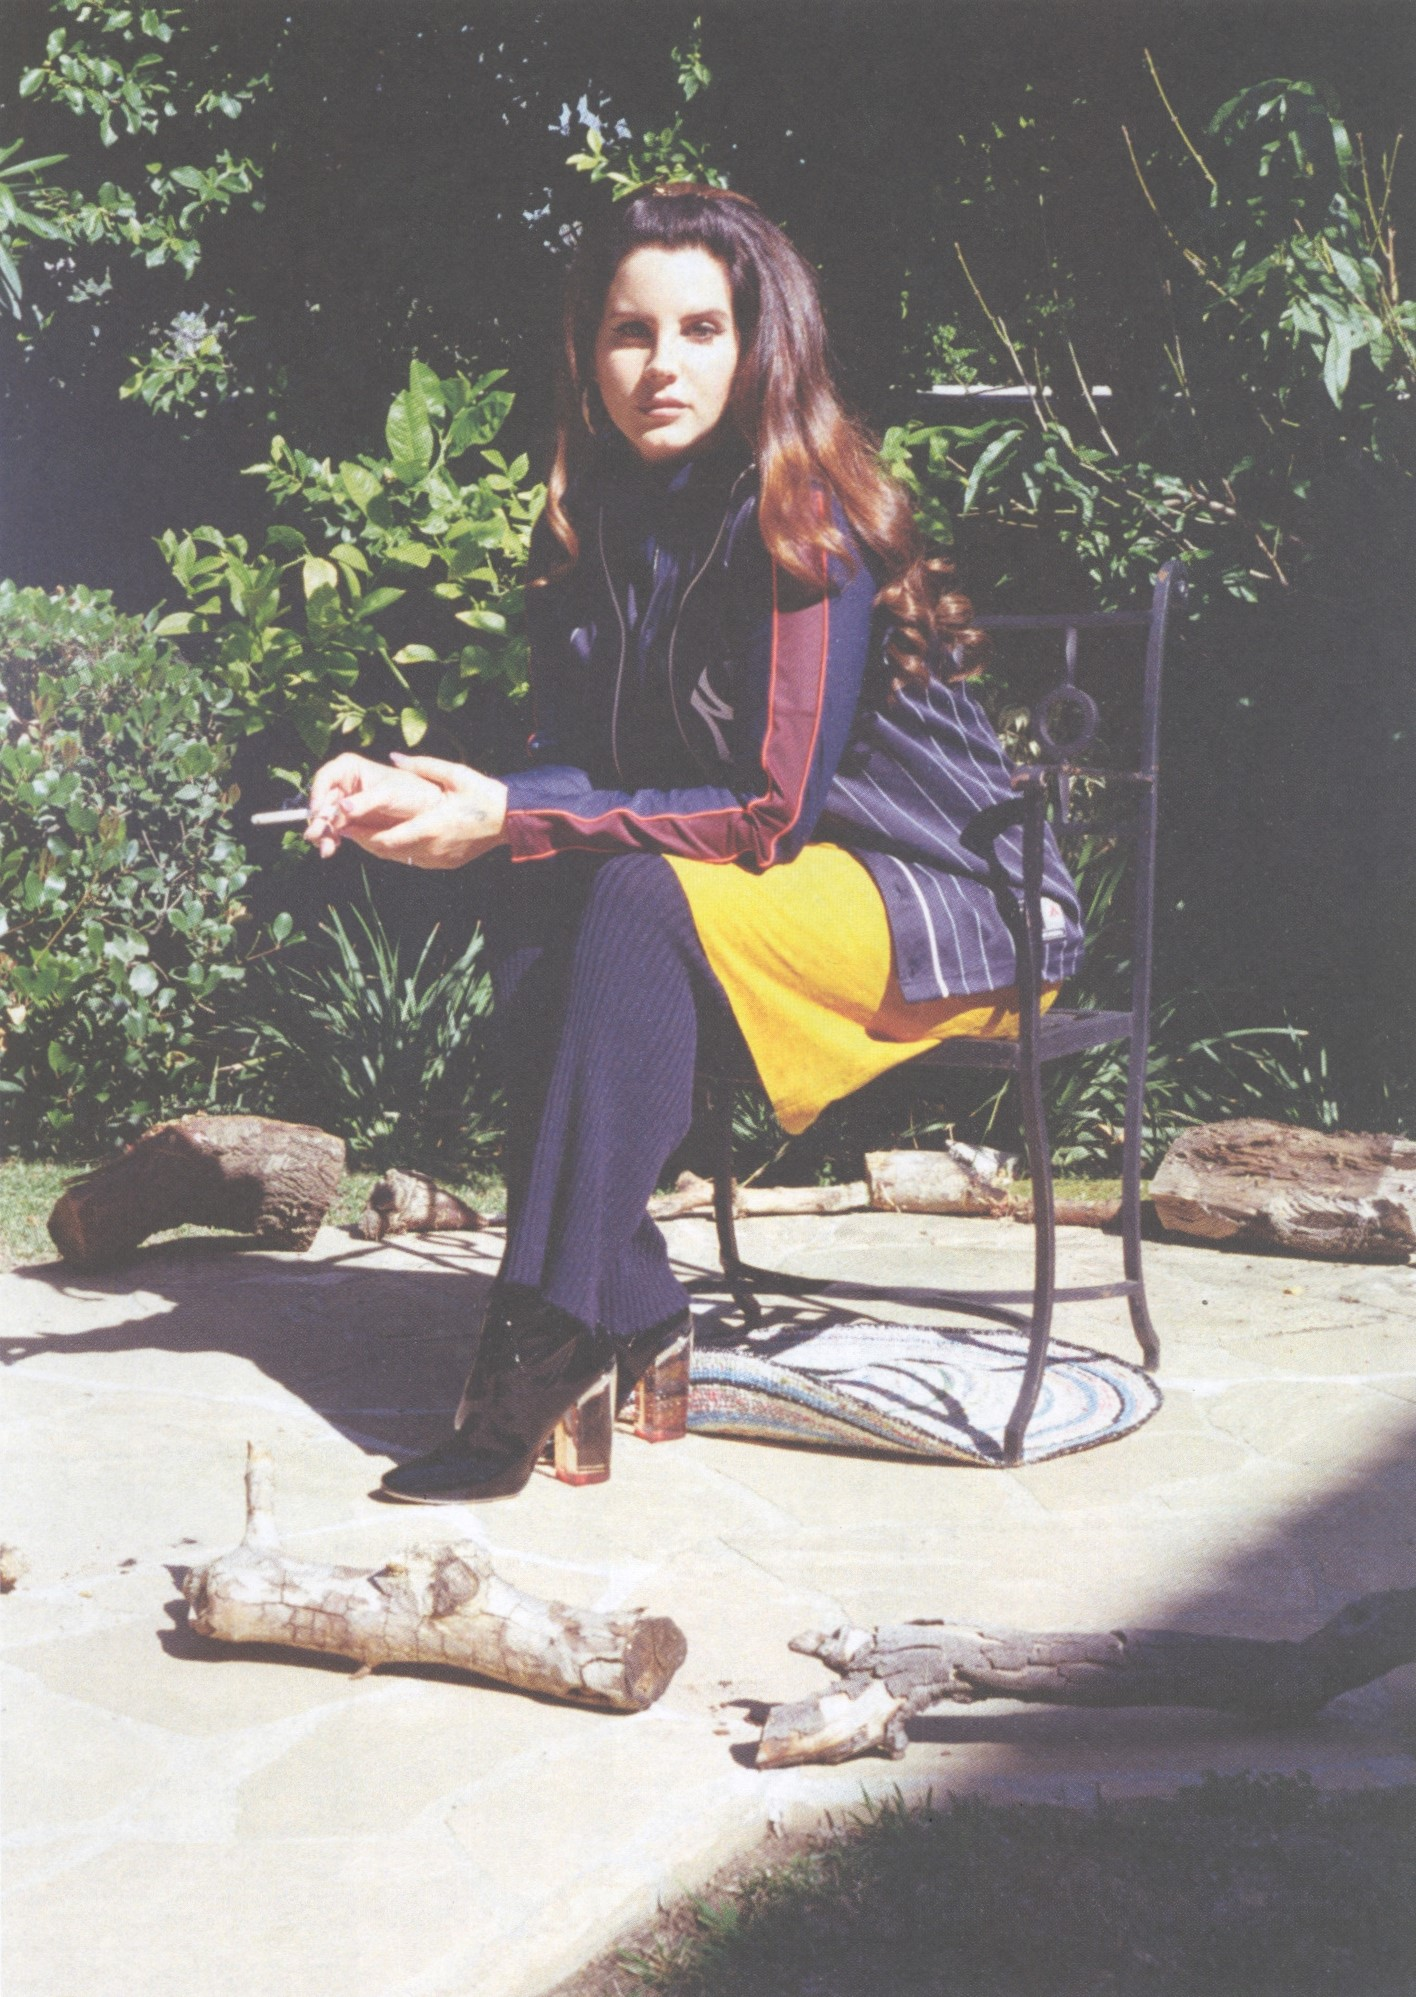 LANA DEL REY | PHOTOGRAPHY ALEXANDRA GORDIENKO | MARFA JOURNAL 4